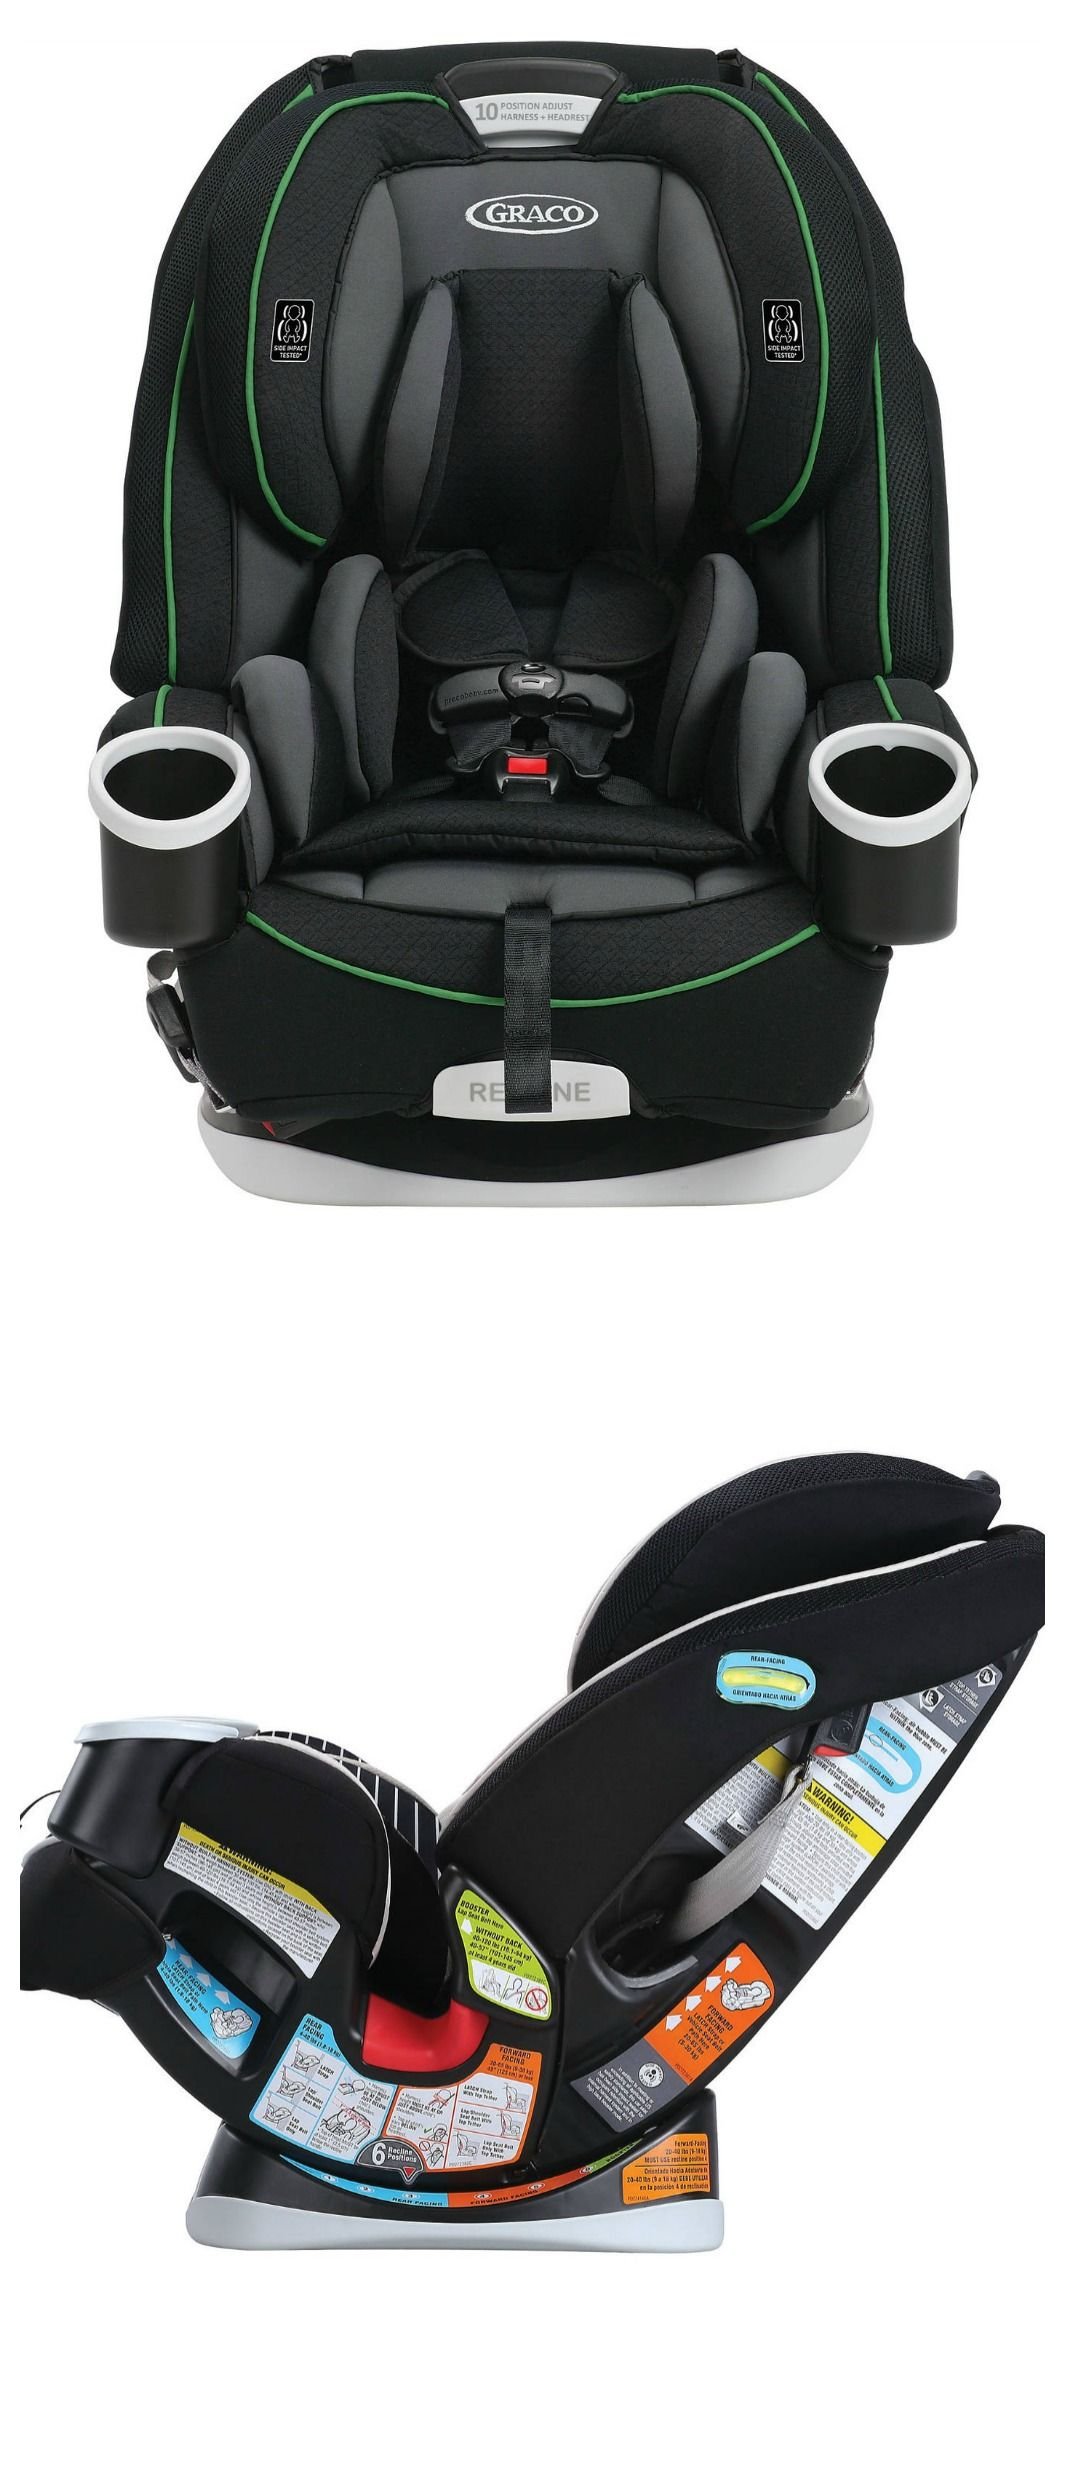 Our List Of The Best Convertible Car Seats Include Graco 4Ever All In One Seat Why We Love It 1 Gives You 10